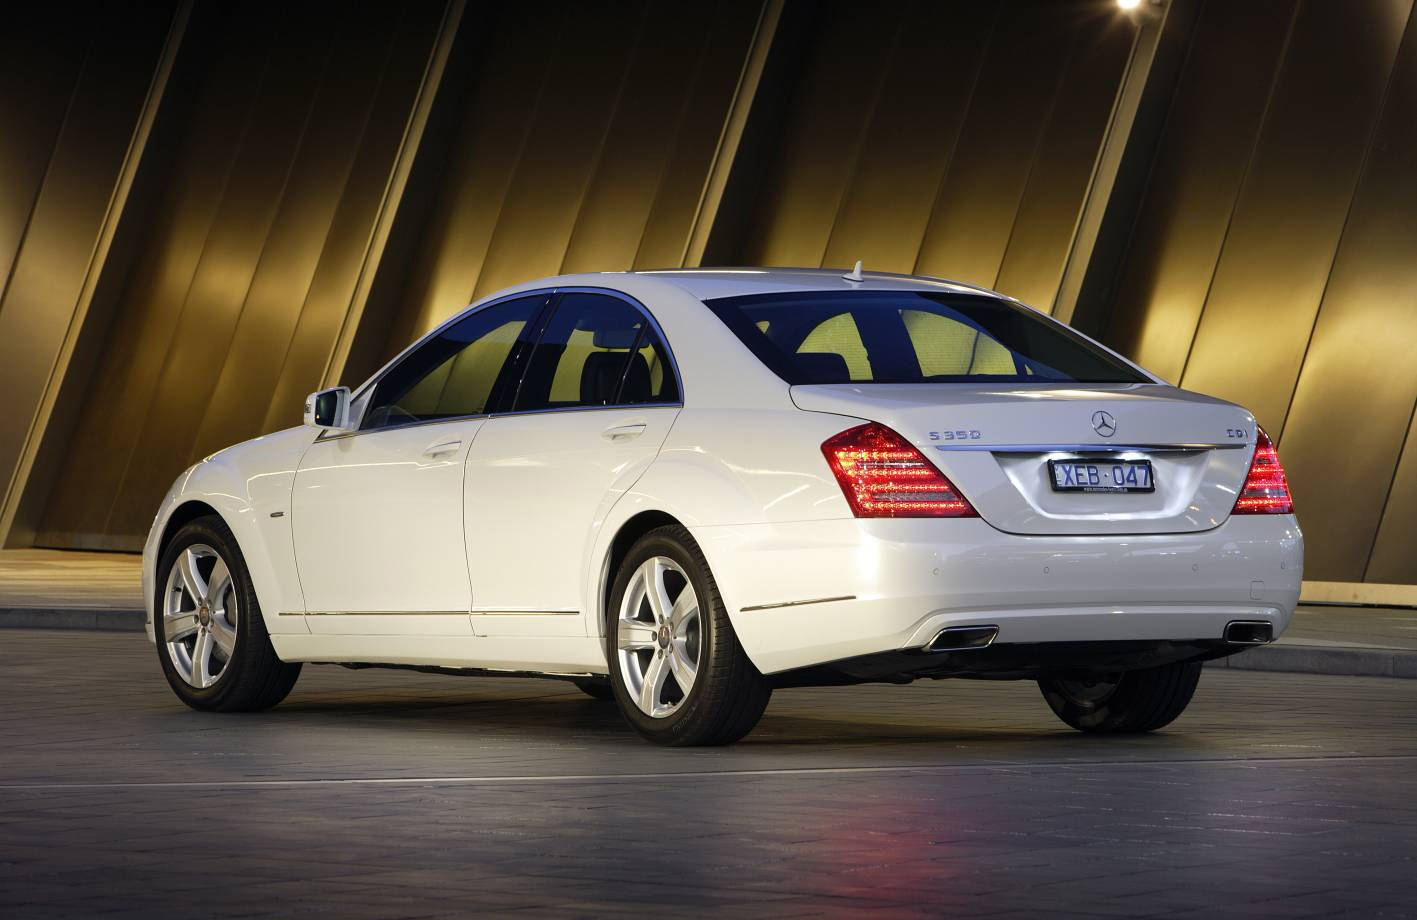 Mercedes benz s350 cdi will be put on sale in us for Mercedes benz s350 for sale